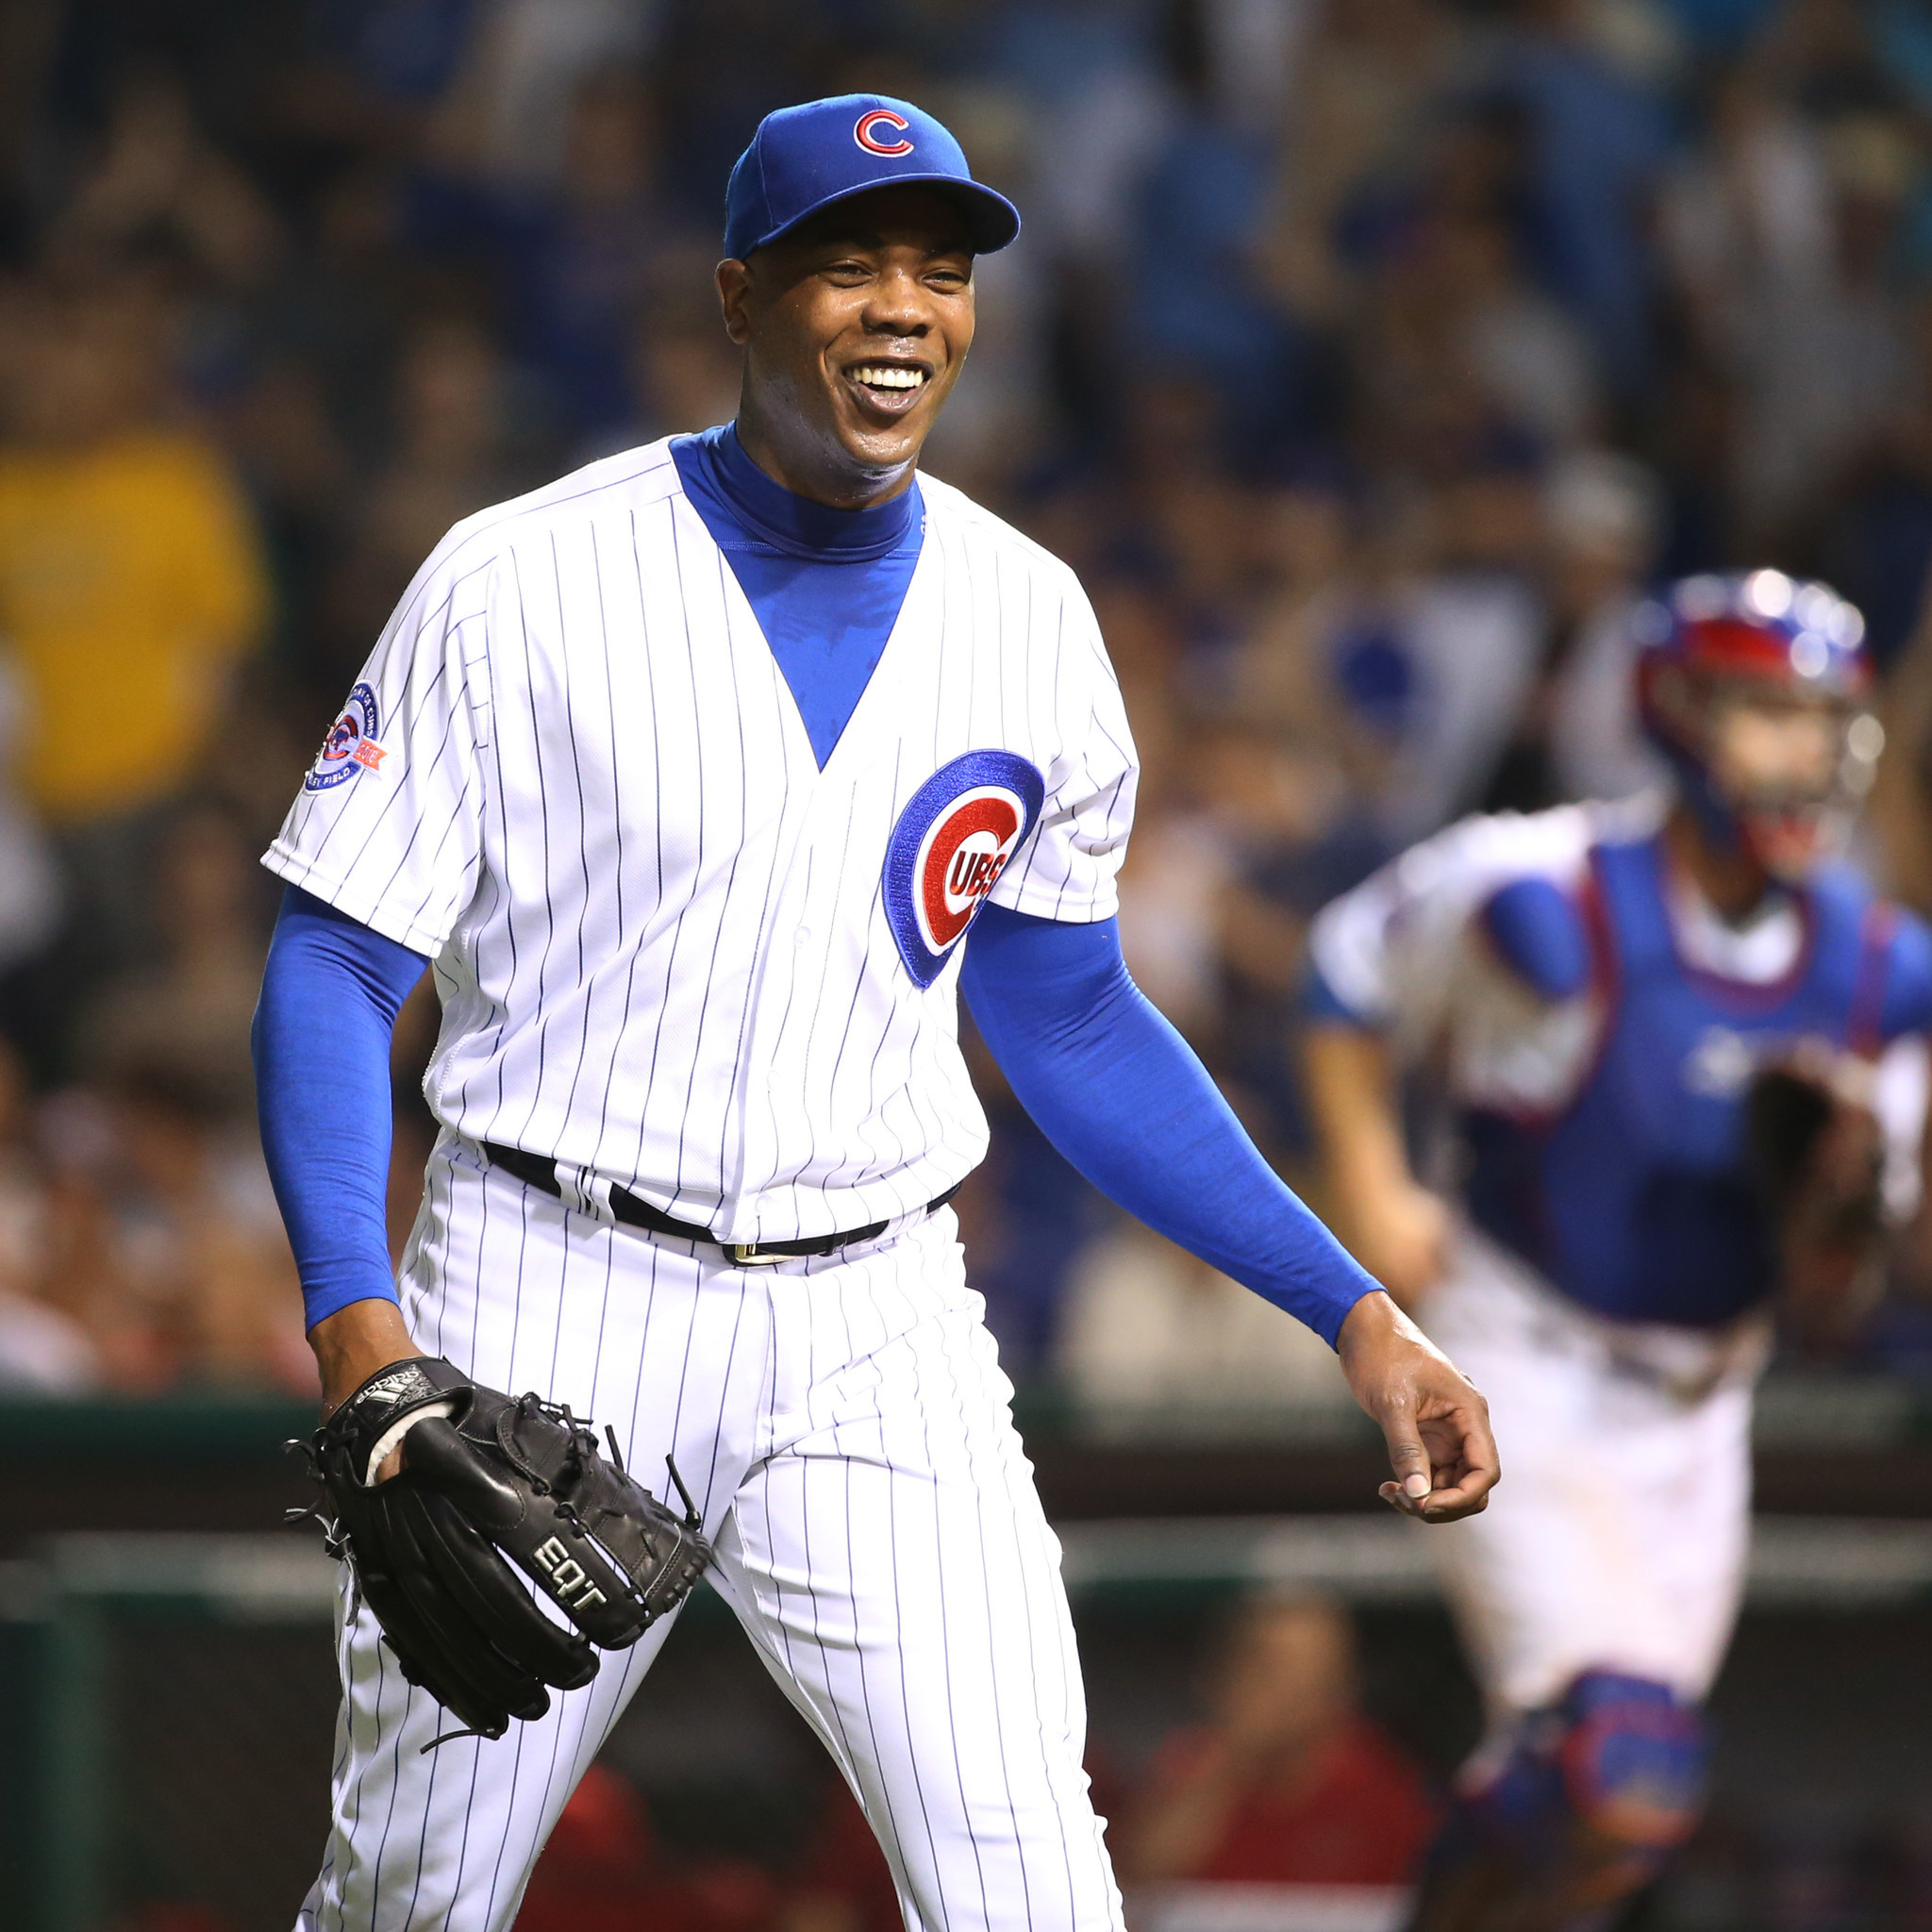 Cubs actions with Aroldis Chapman, fired DJ reek of hypocrisy ...